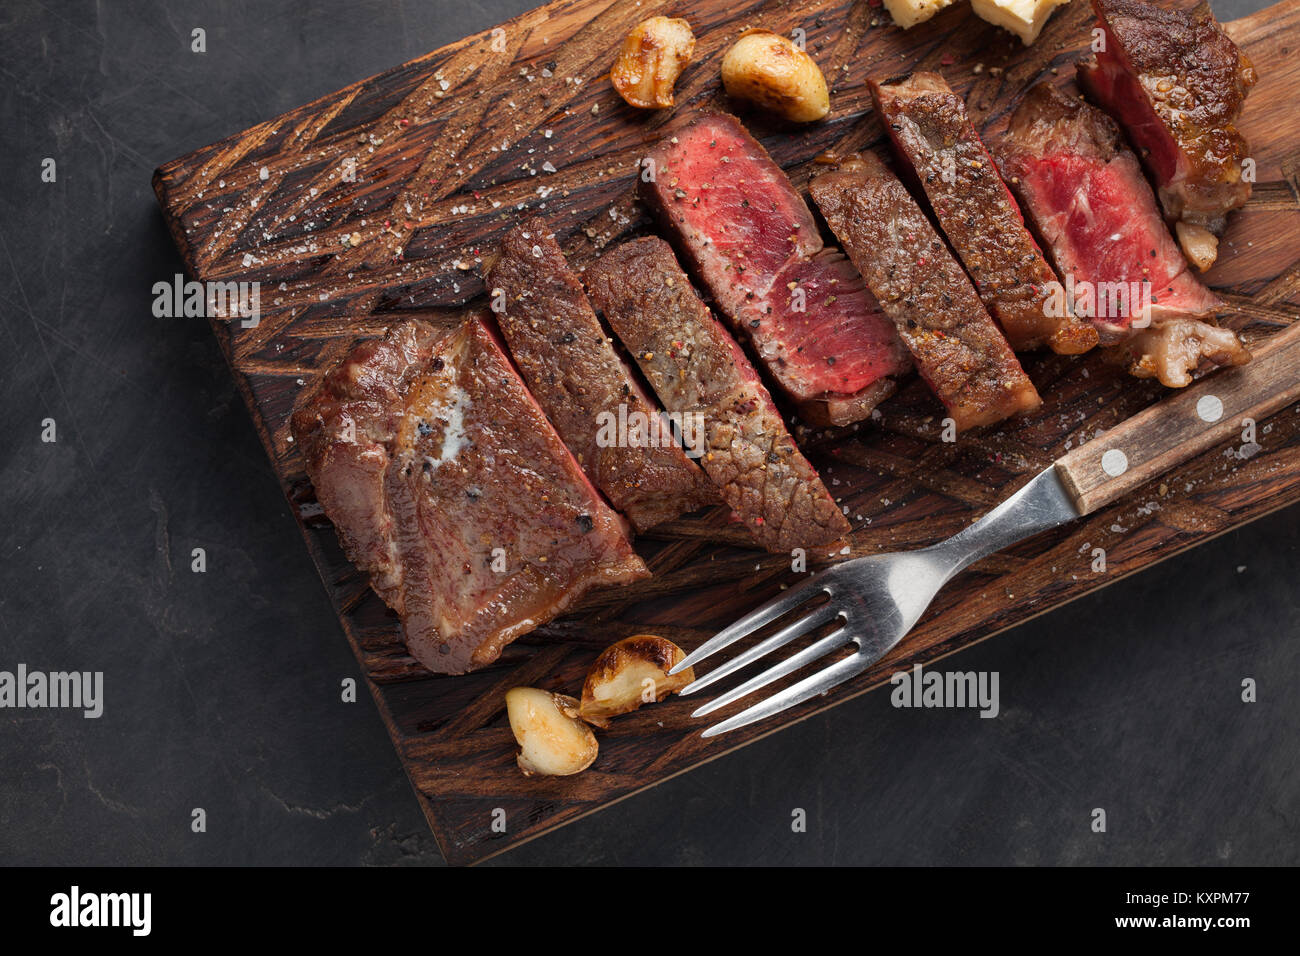 Closeup ready to eat steak new York beef breeds of black Angus with herbs, garlic and butter on a wooden Board. - Stock Image